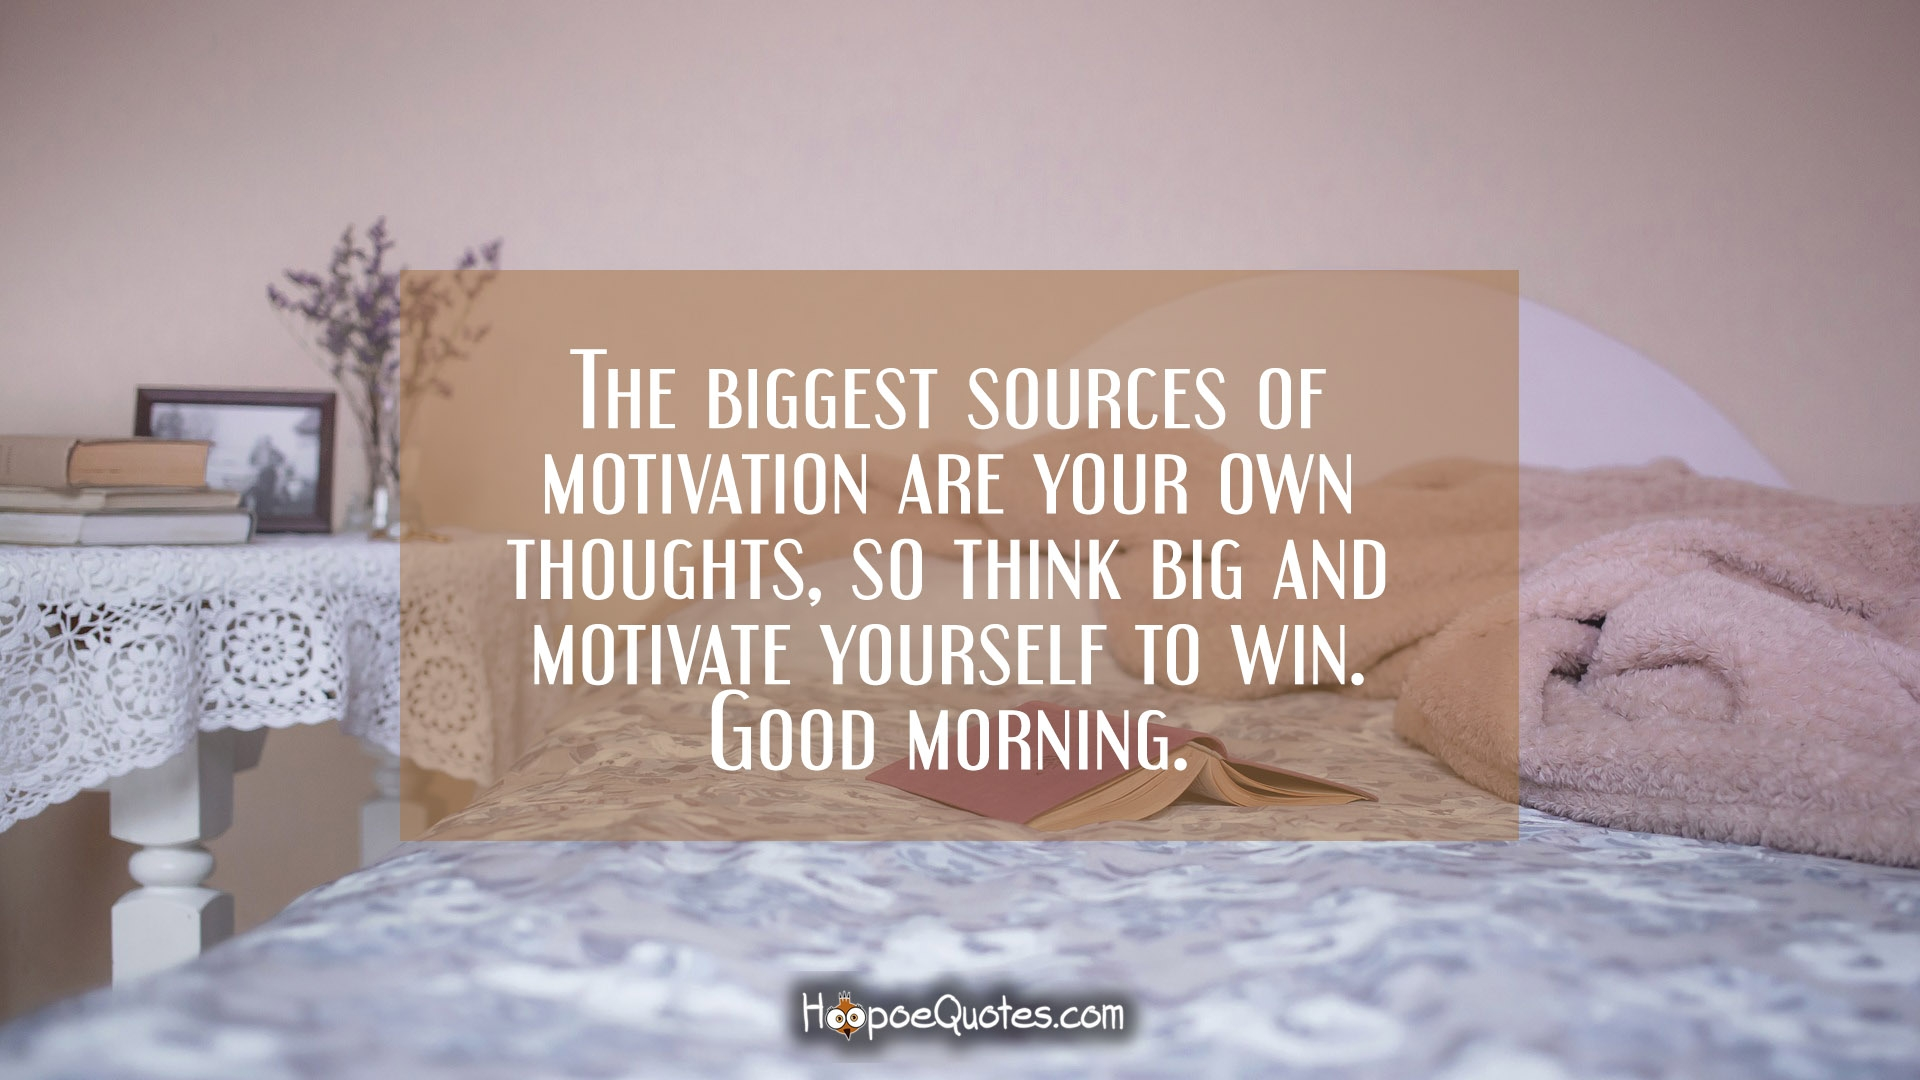 The biggest sources of motivation are your own thoughts